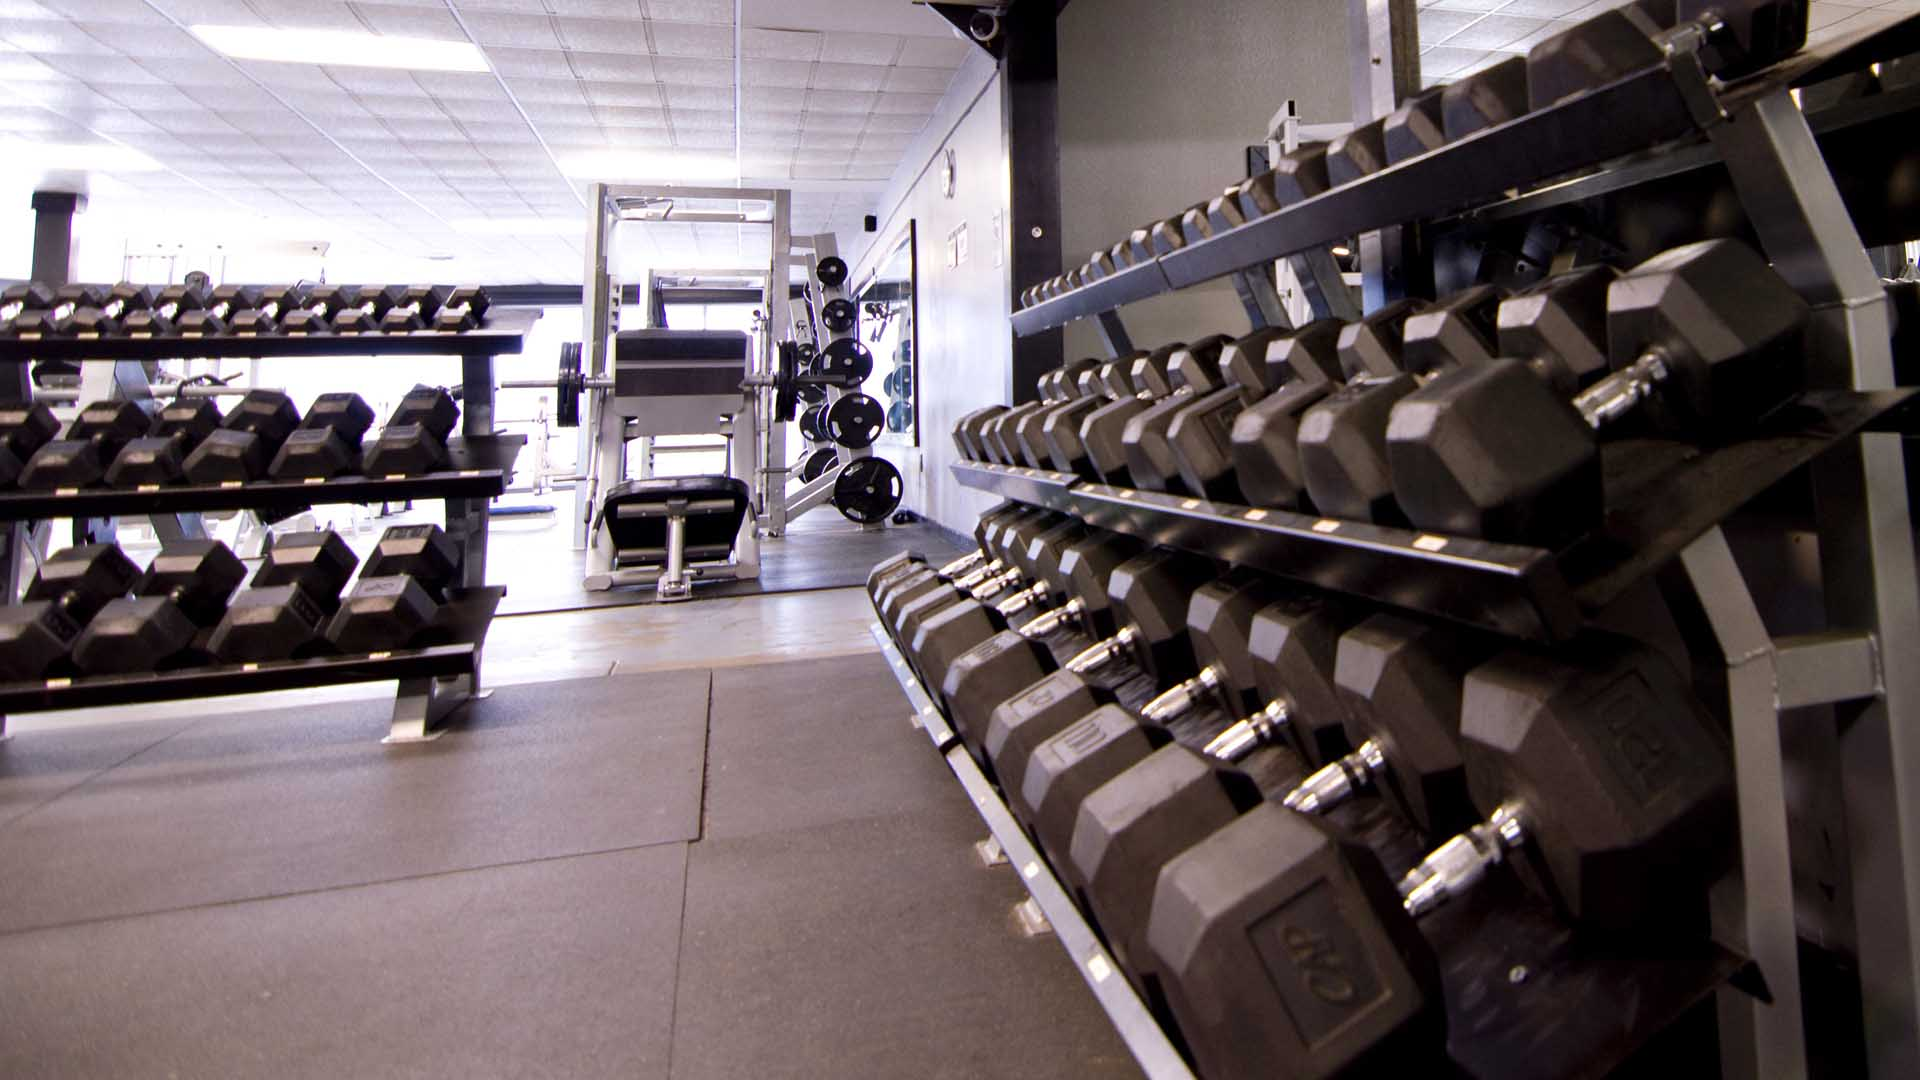 Looking down a line of heavy dumbbells towards the front windows of the gym.